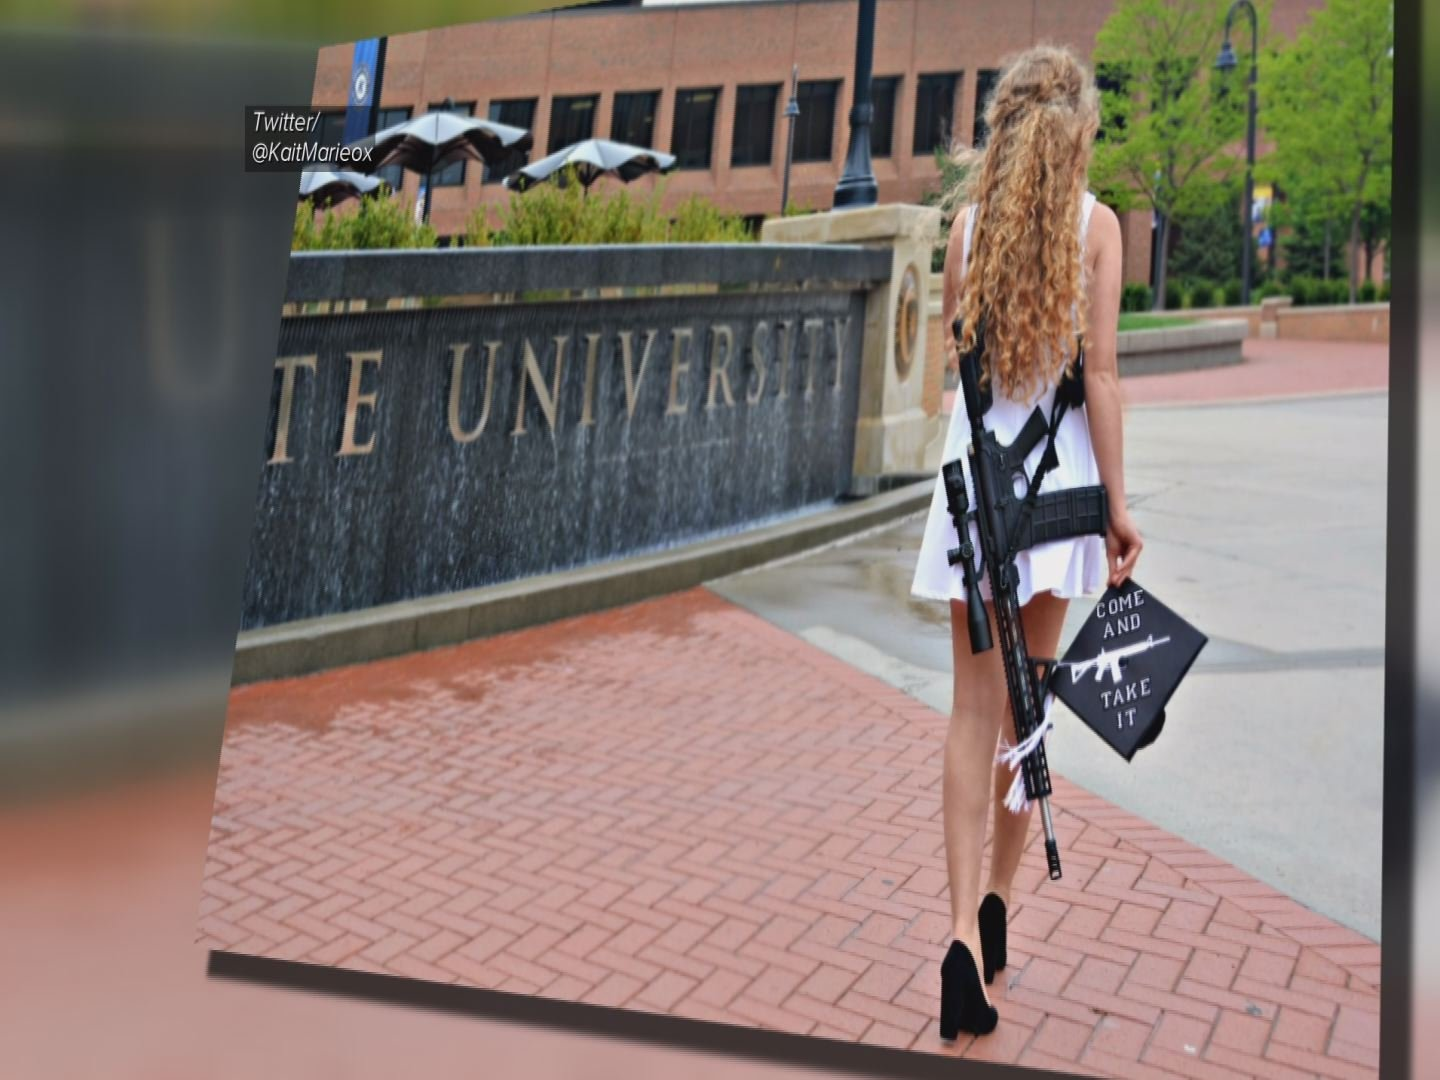 Graduate's photo carrying rifle goes viral